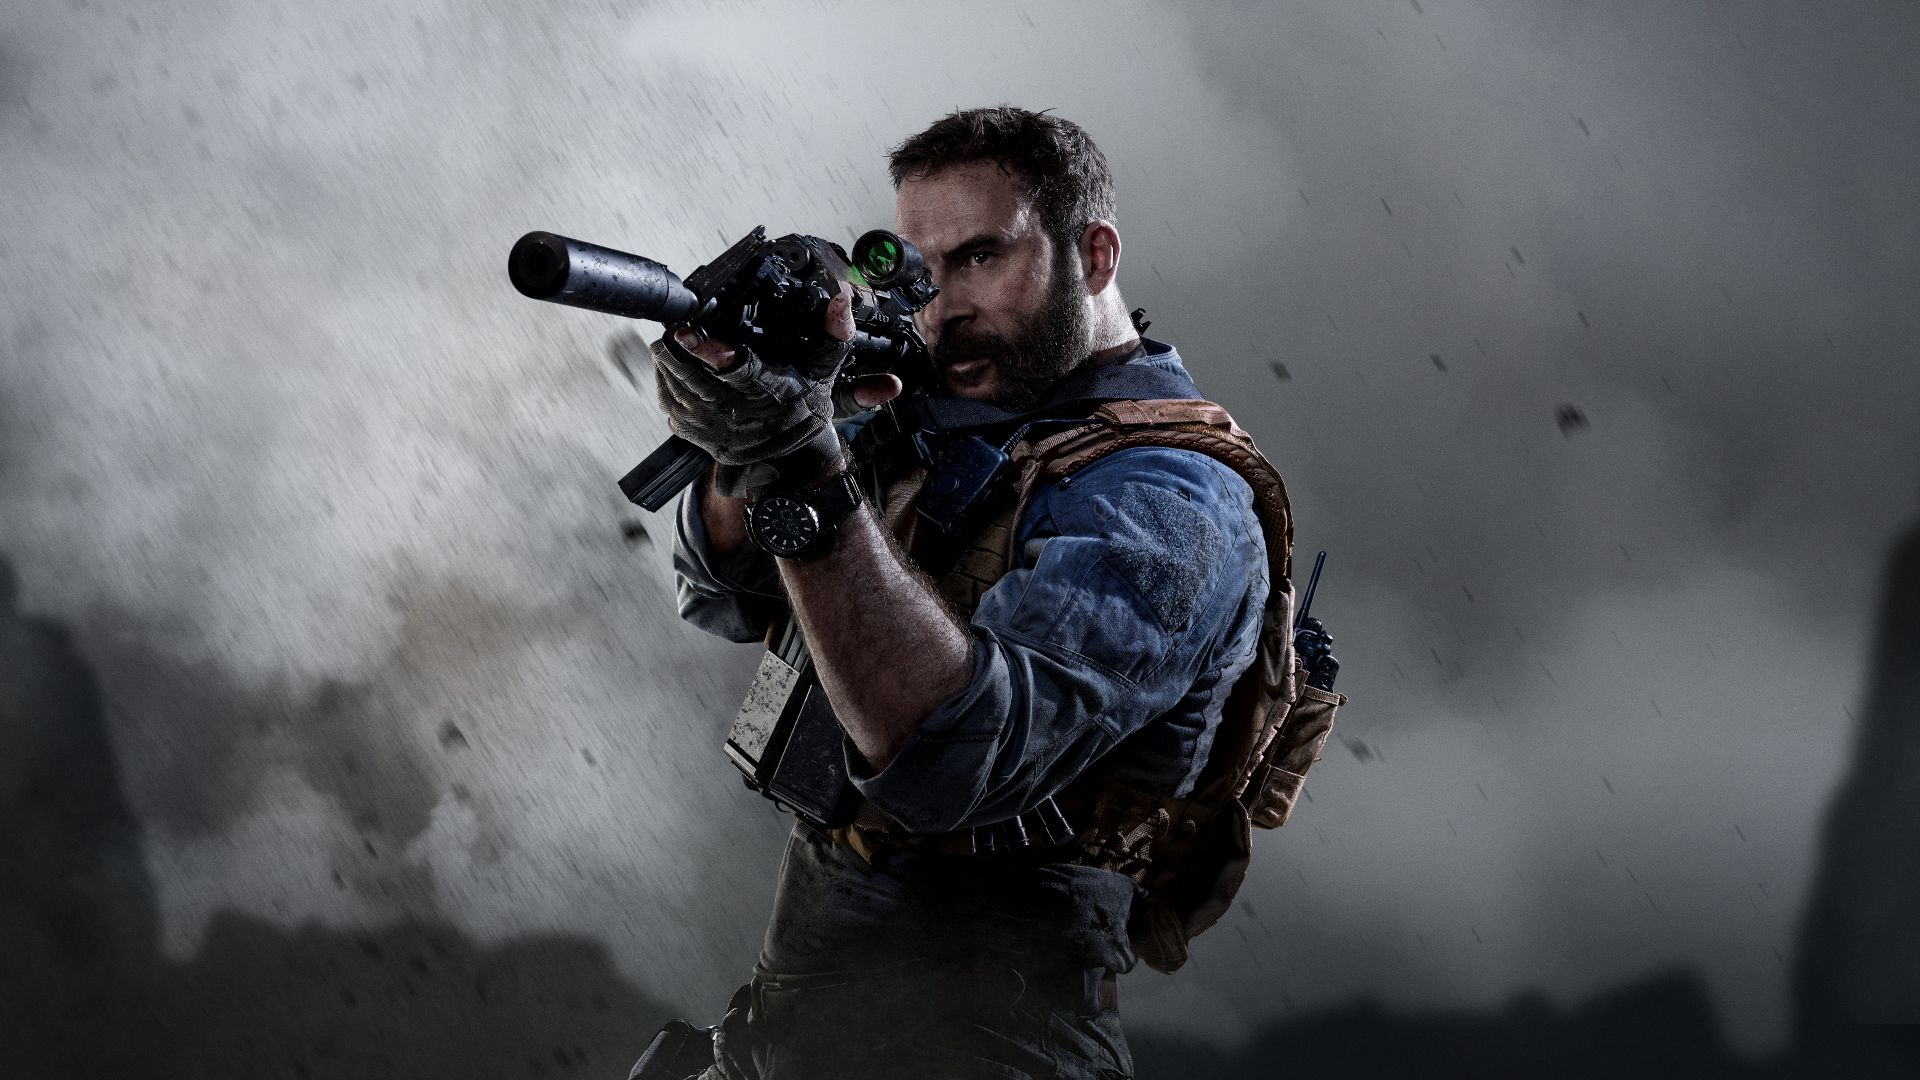 /top-10-call-of-duty-games-ranked-by-sales-4zw3455 feature image